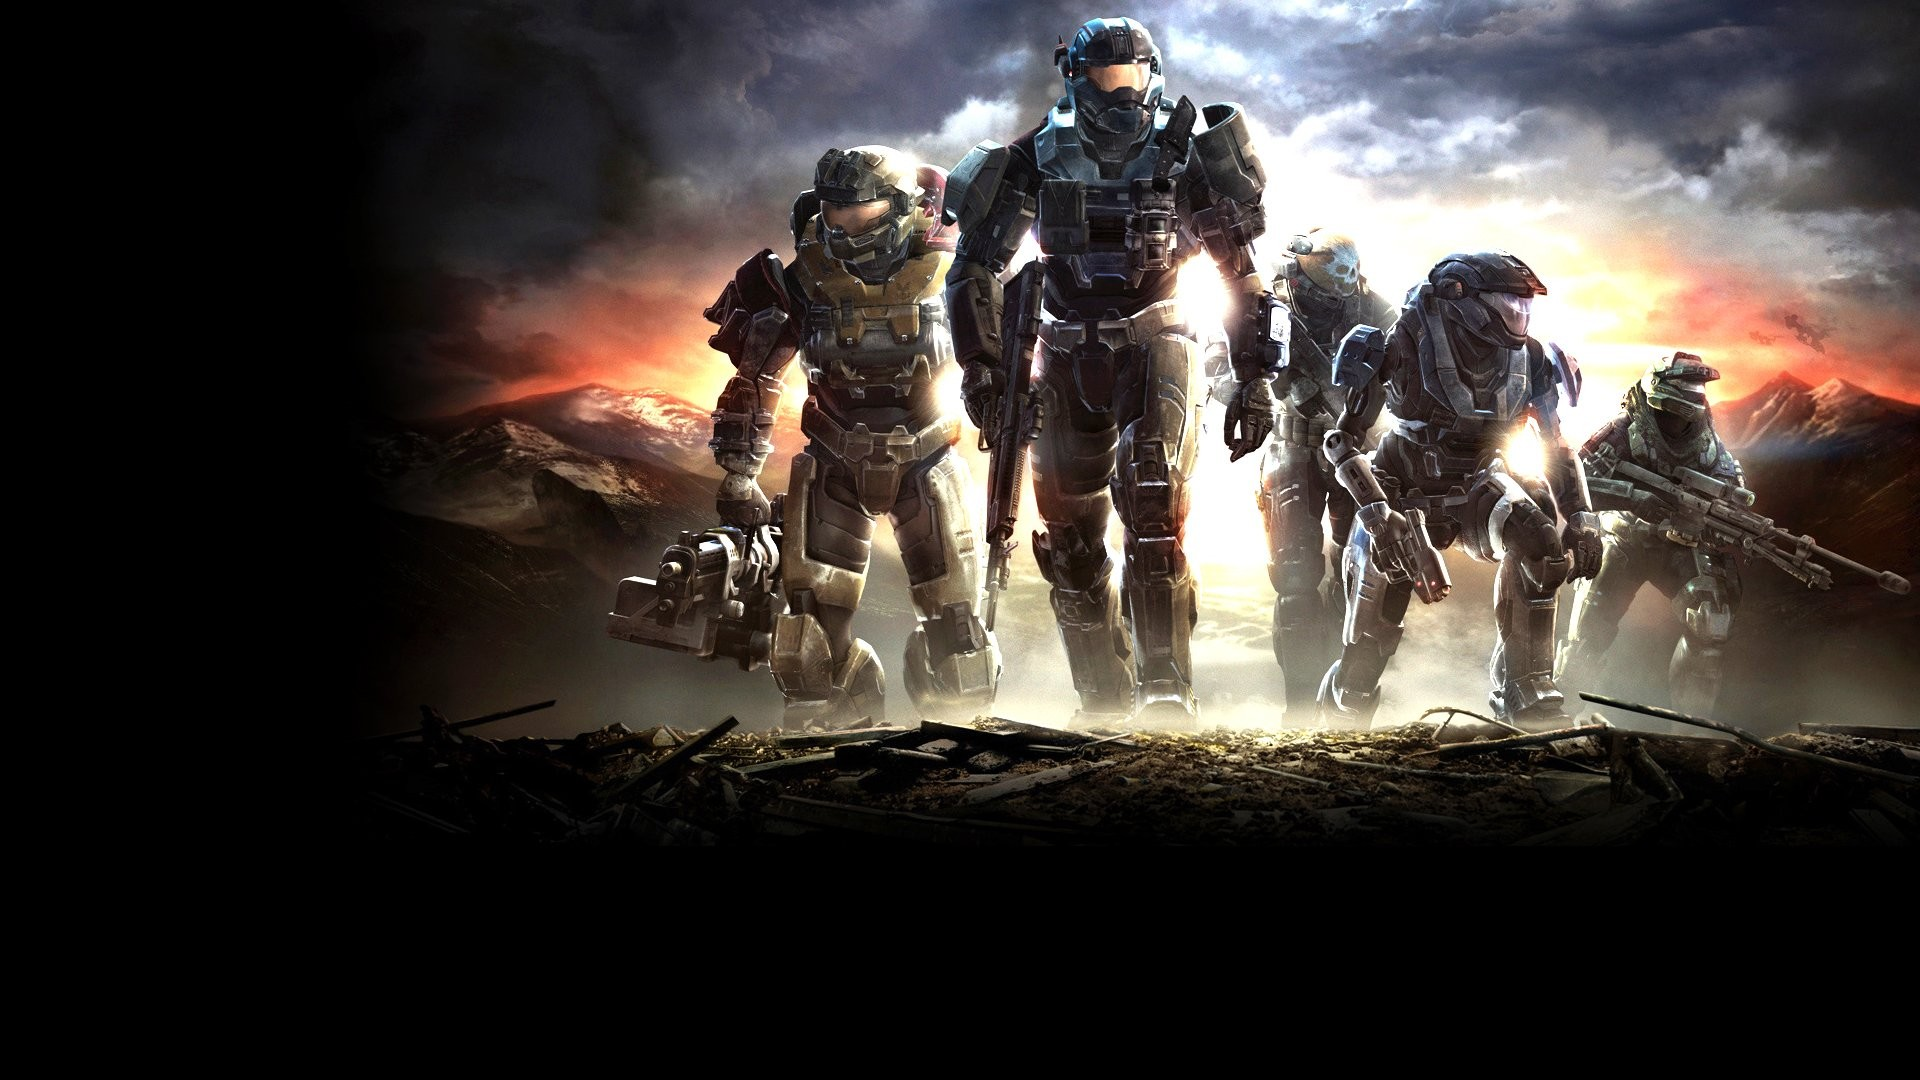 1920x1080 Halo Reach HD Background Wallpapers